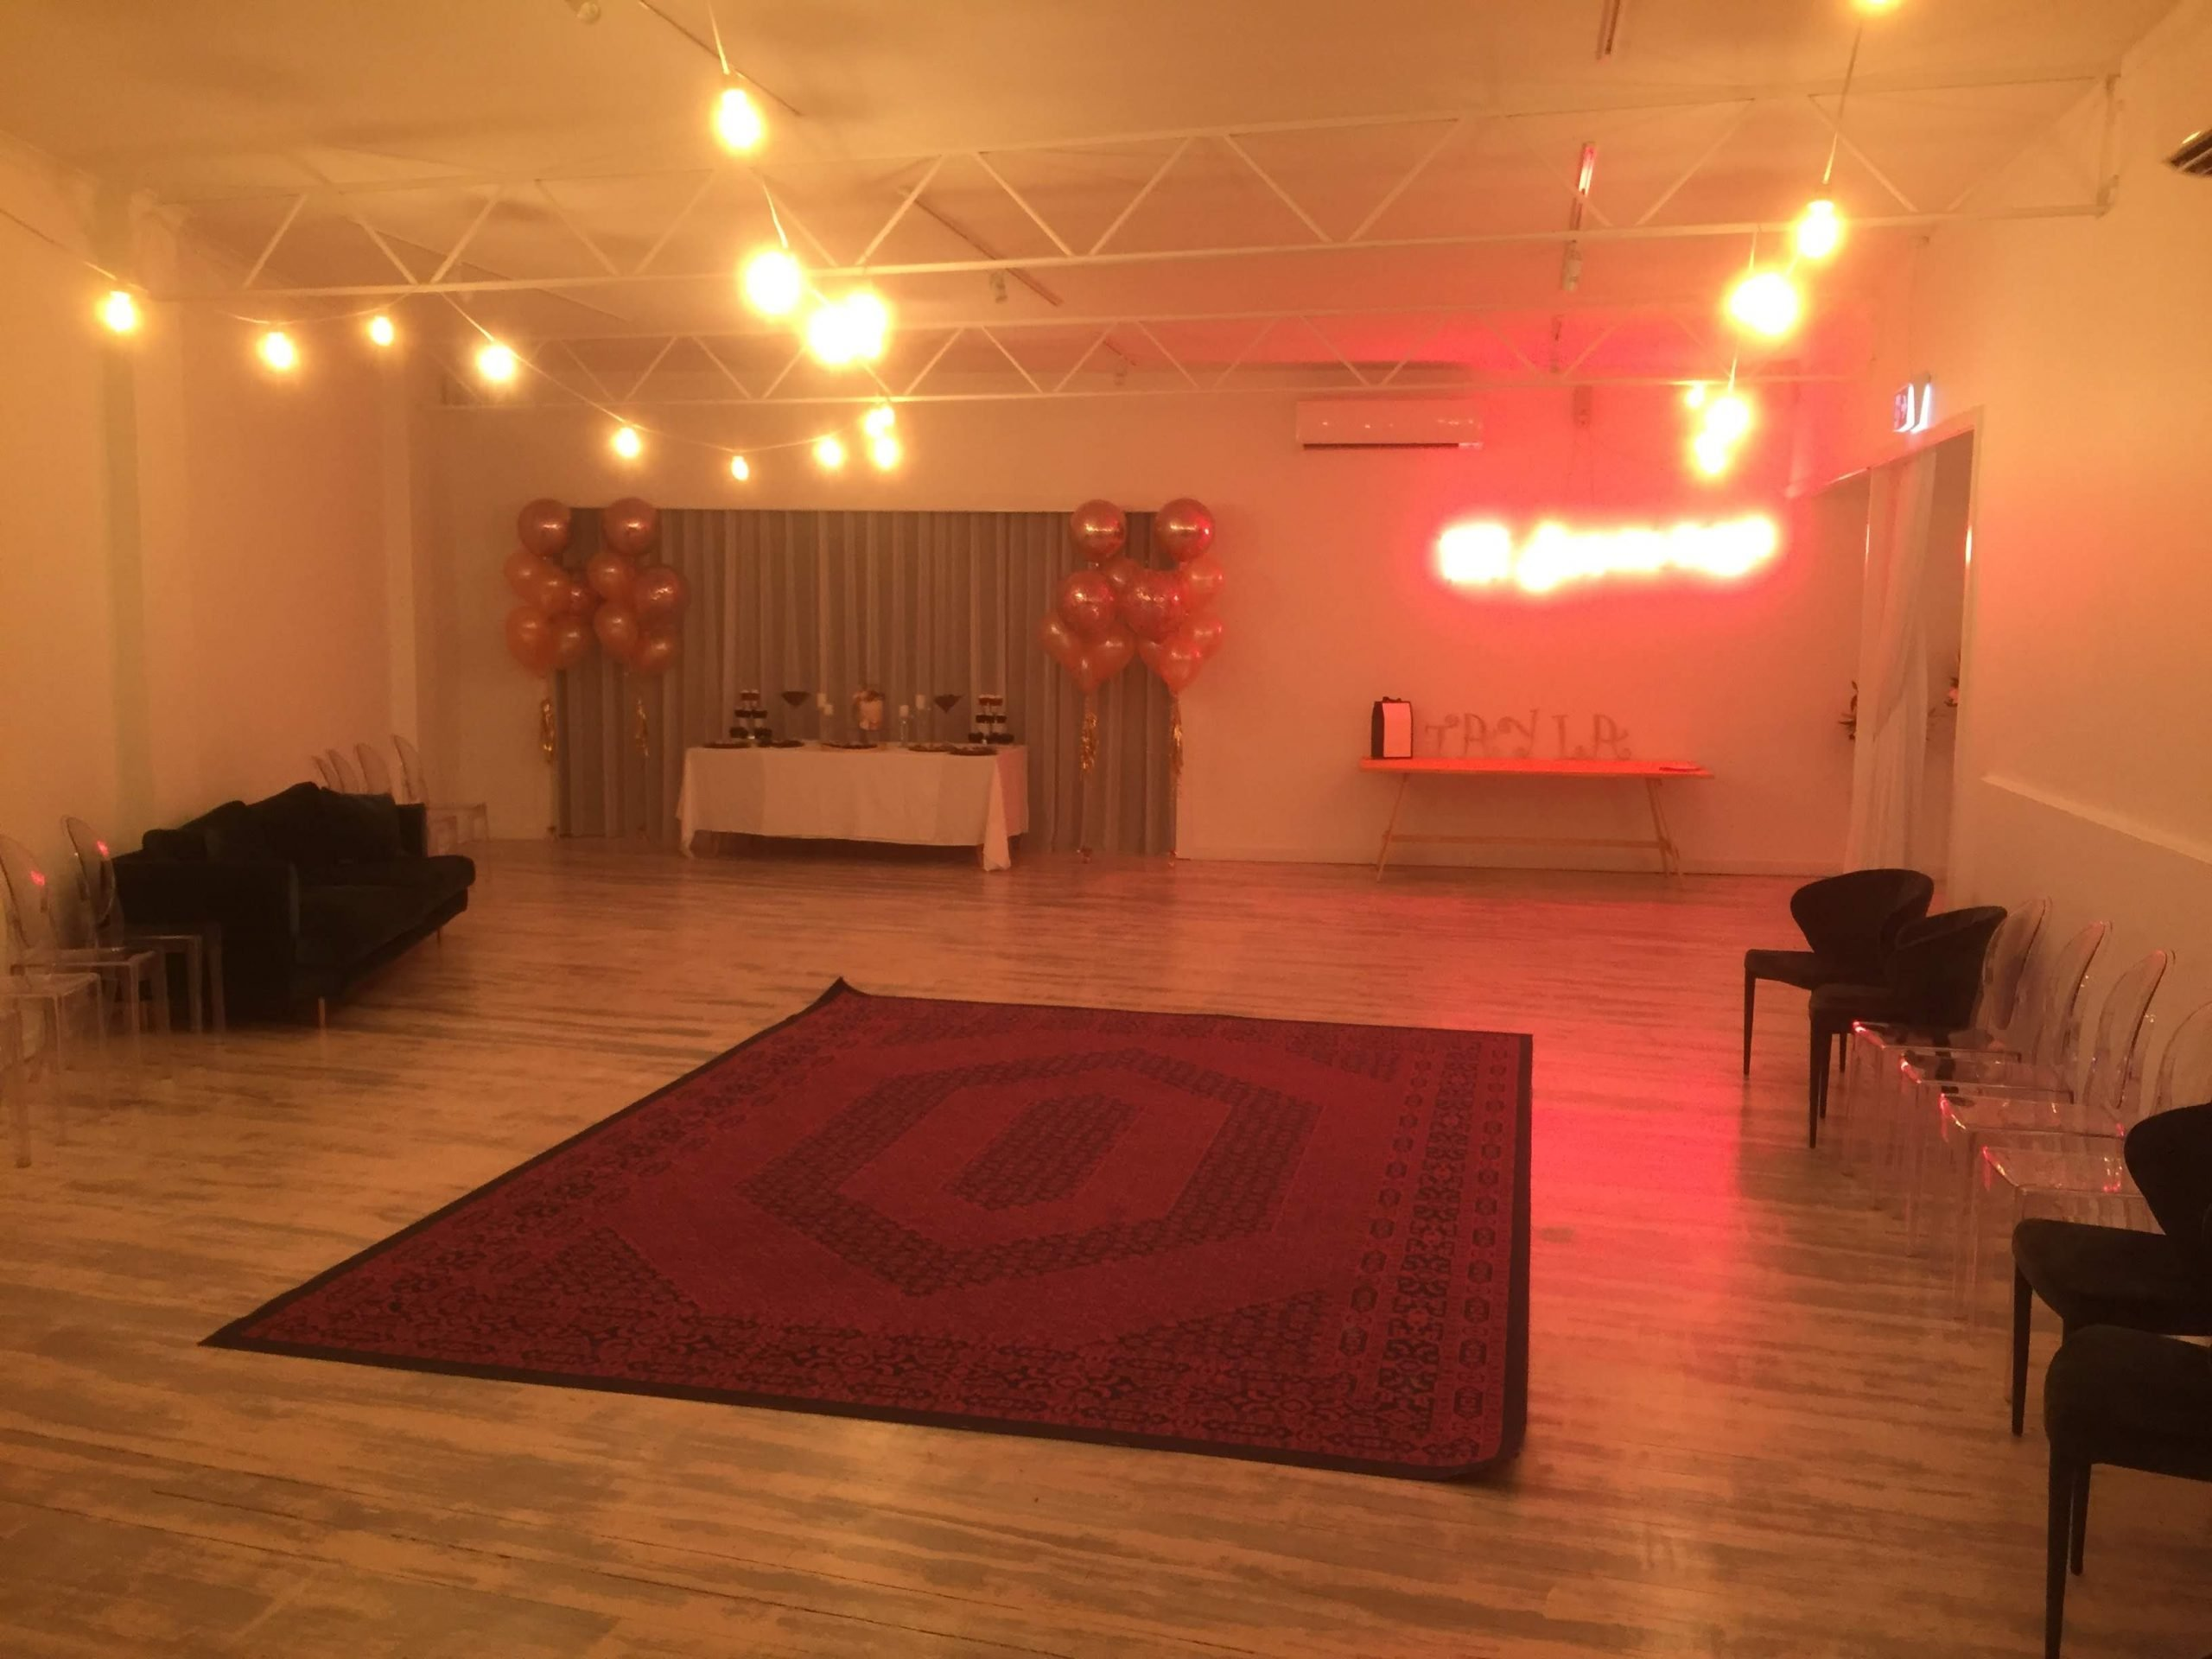 18th Birthday - Social Club Canberra - Vintage Events